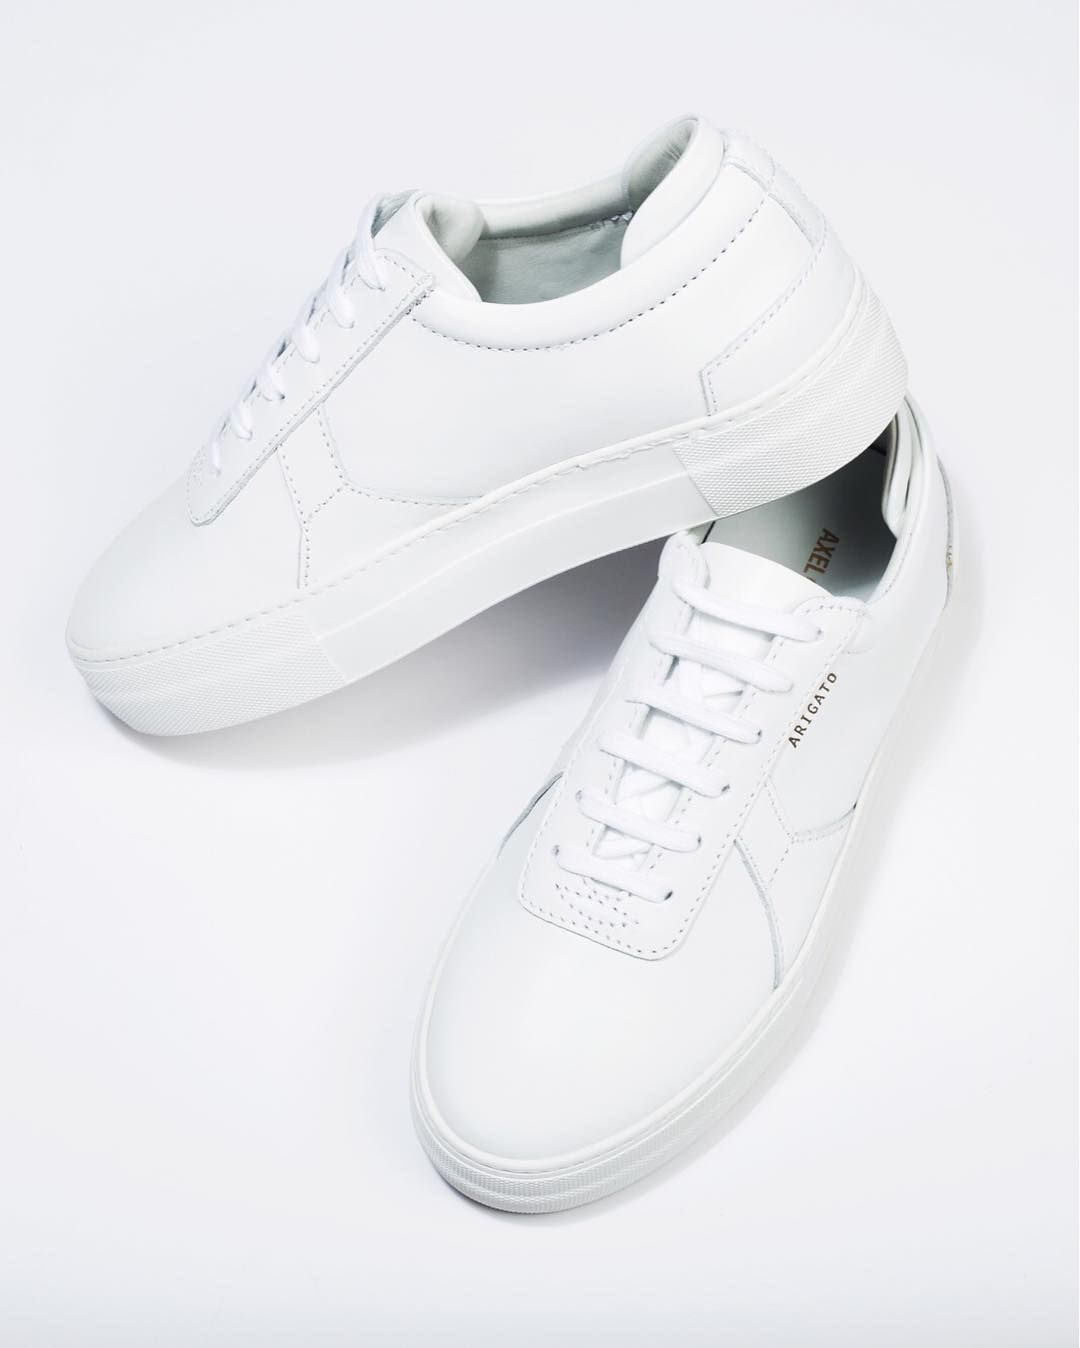 Axel Arigato Platform Www Axelarigato Com Axelarigato Shoes Sneakers Leather Handcrafted Shoes White Sneakers Sneakers [ 1348 x 1080 Pixel ]